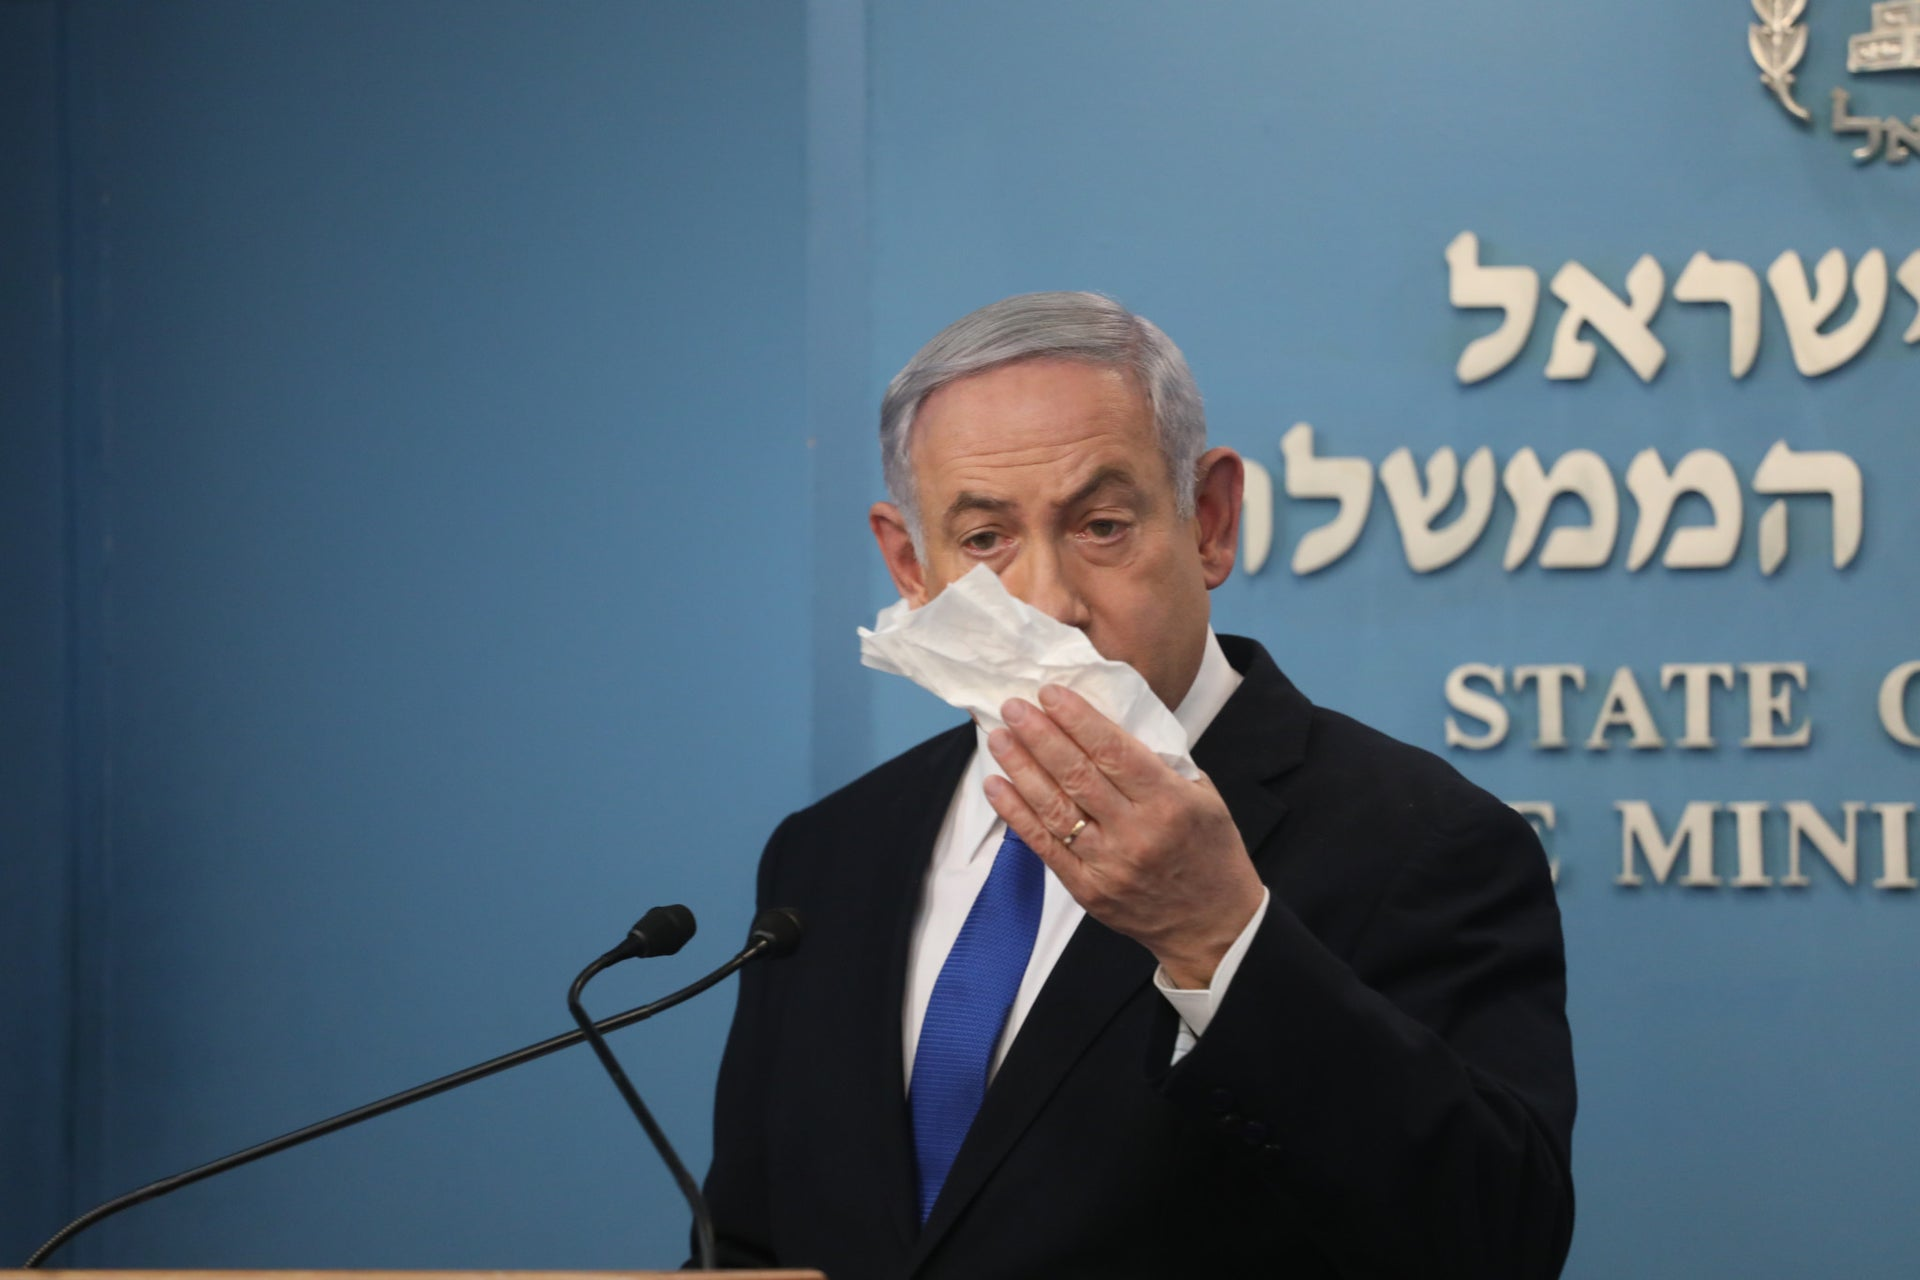 Netanyahu demonstrates how to use a tissue during a coronavirus briefing.